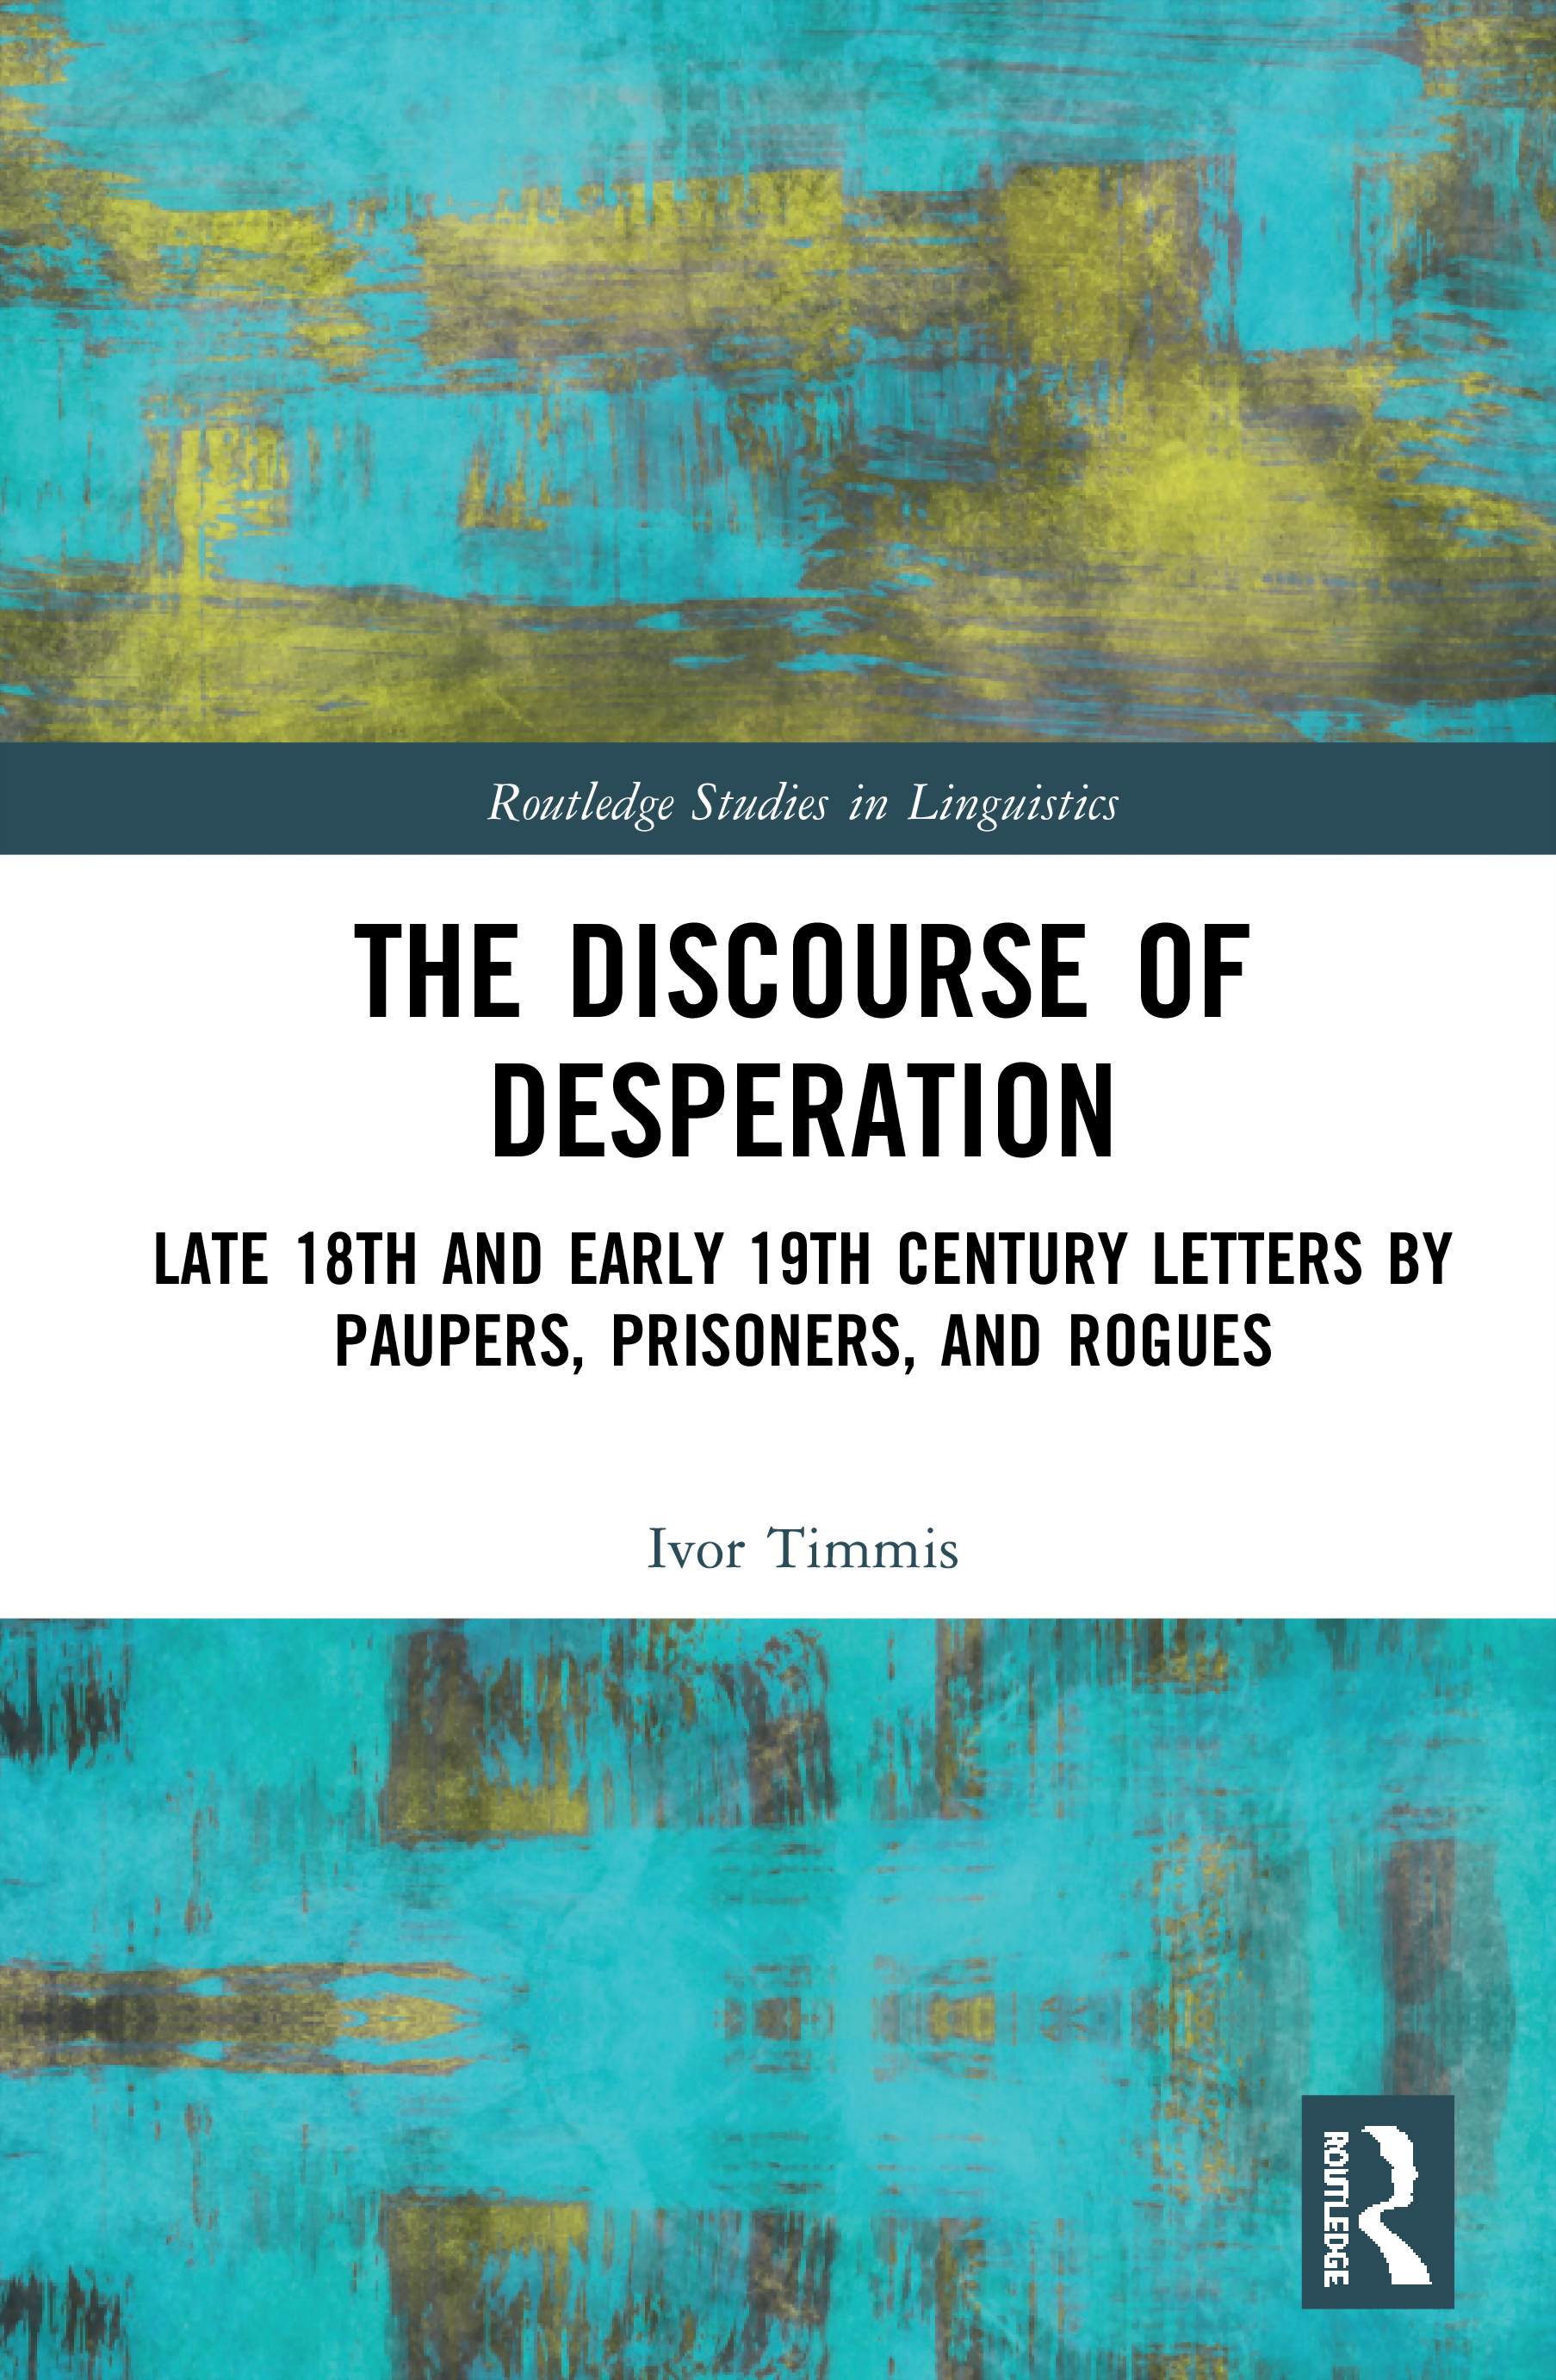 The Discourse of Desperation: Late 18th and Early 19th Century Letters by Paupers, Prisoners, and Rogues, 1st Edition (Hardback) book cover